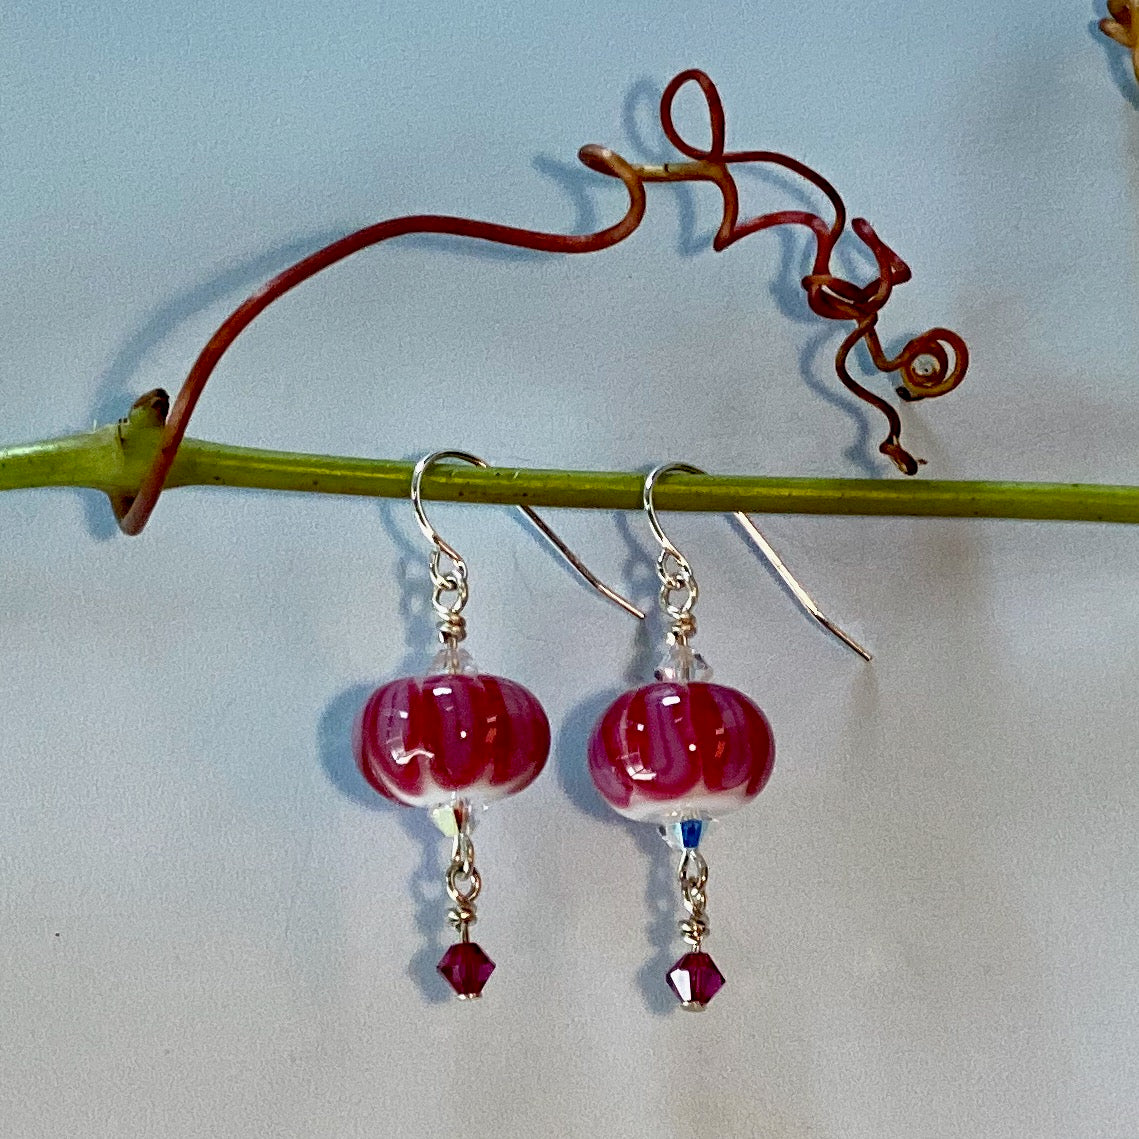 cranberry neo melon, bead over crystal style